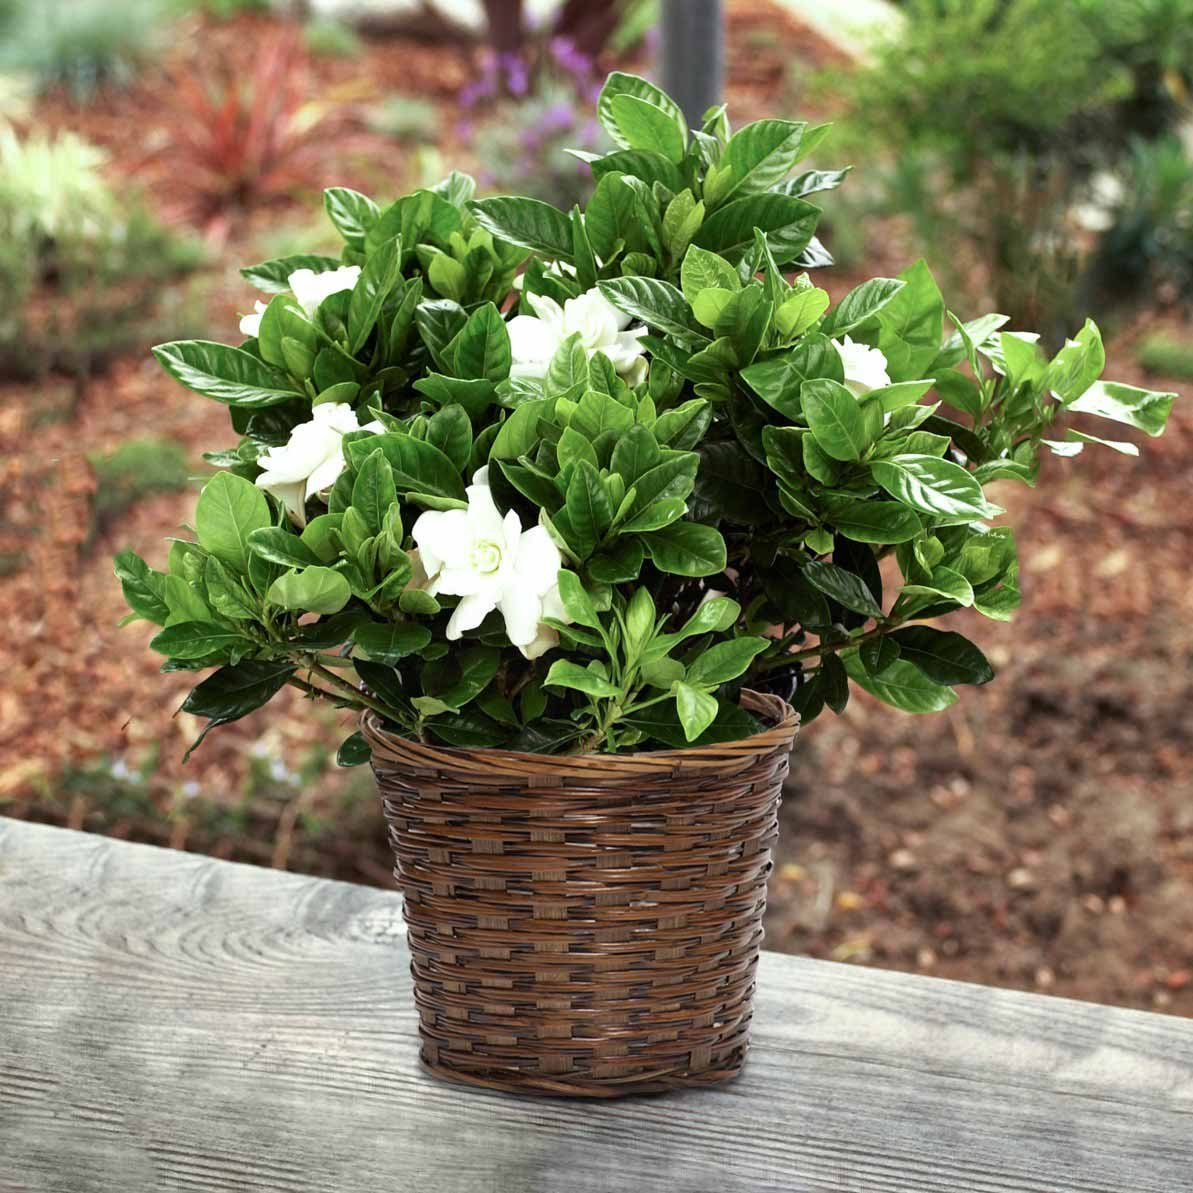 Popular tropical plants indoor plant tips com for Flowering plants for indoors